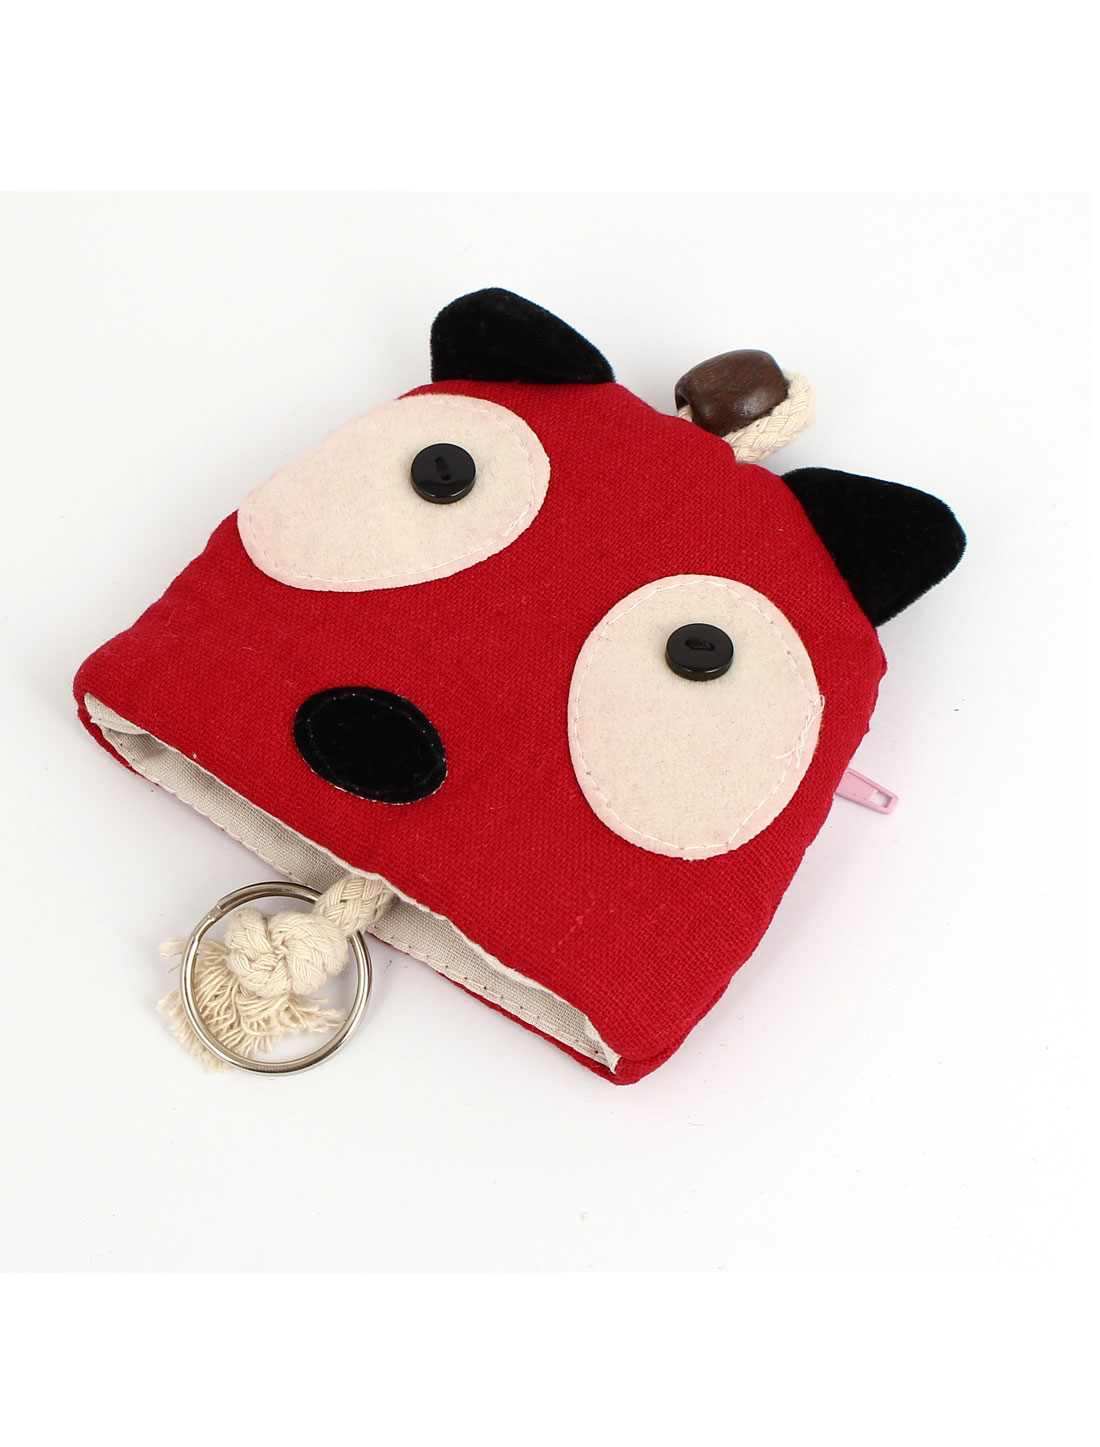 Lady Split Ring Strap Panda Face Pattern Zip Up Coin Key Purse Bag Wallet Pouch Red